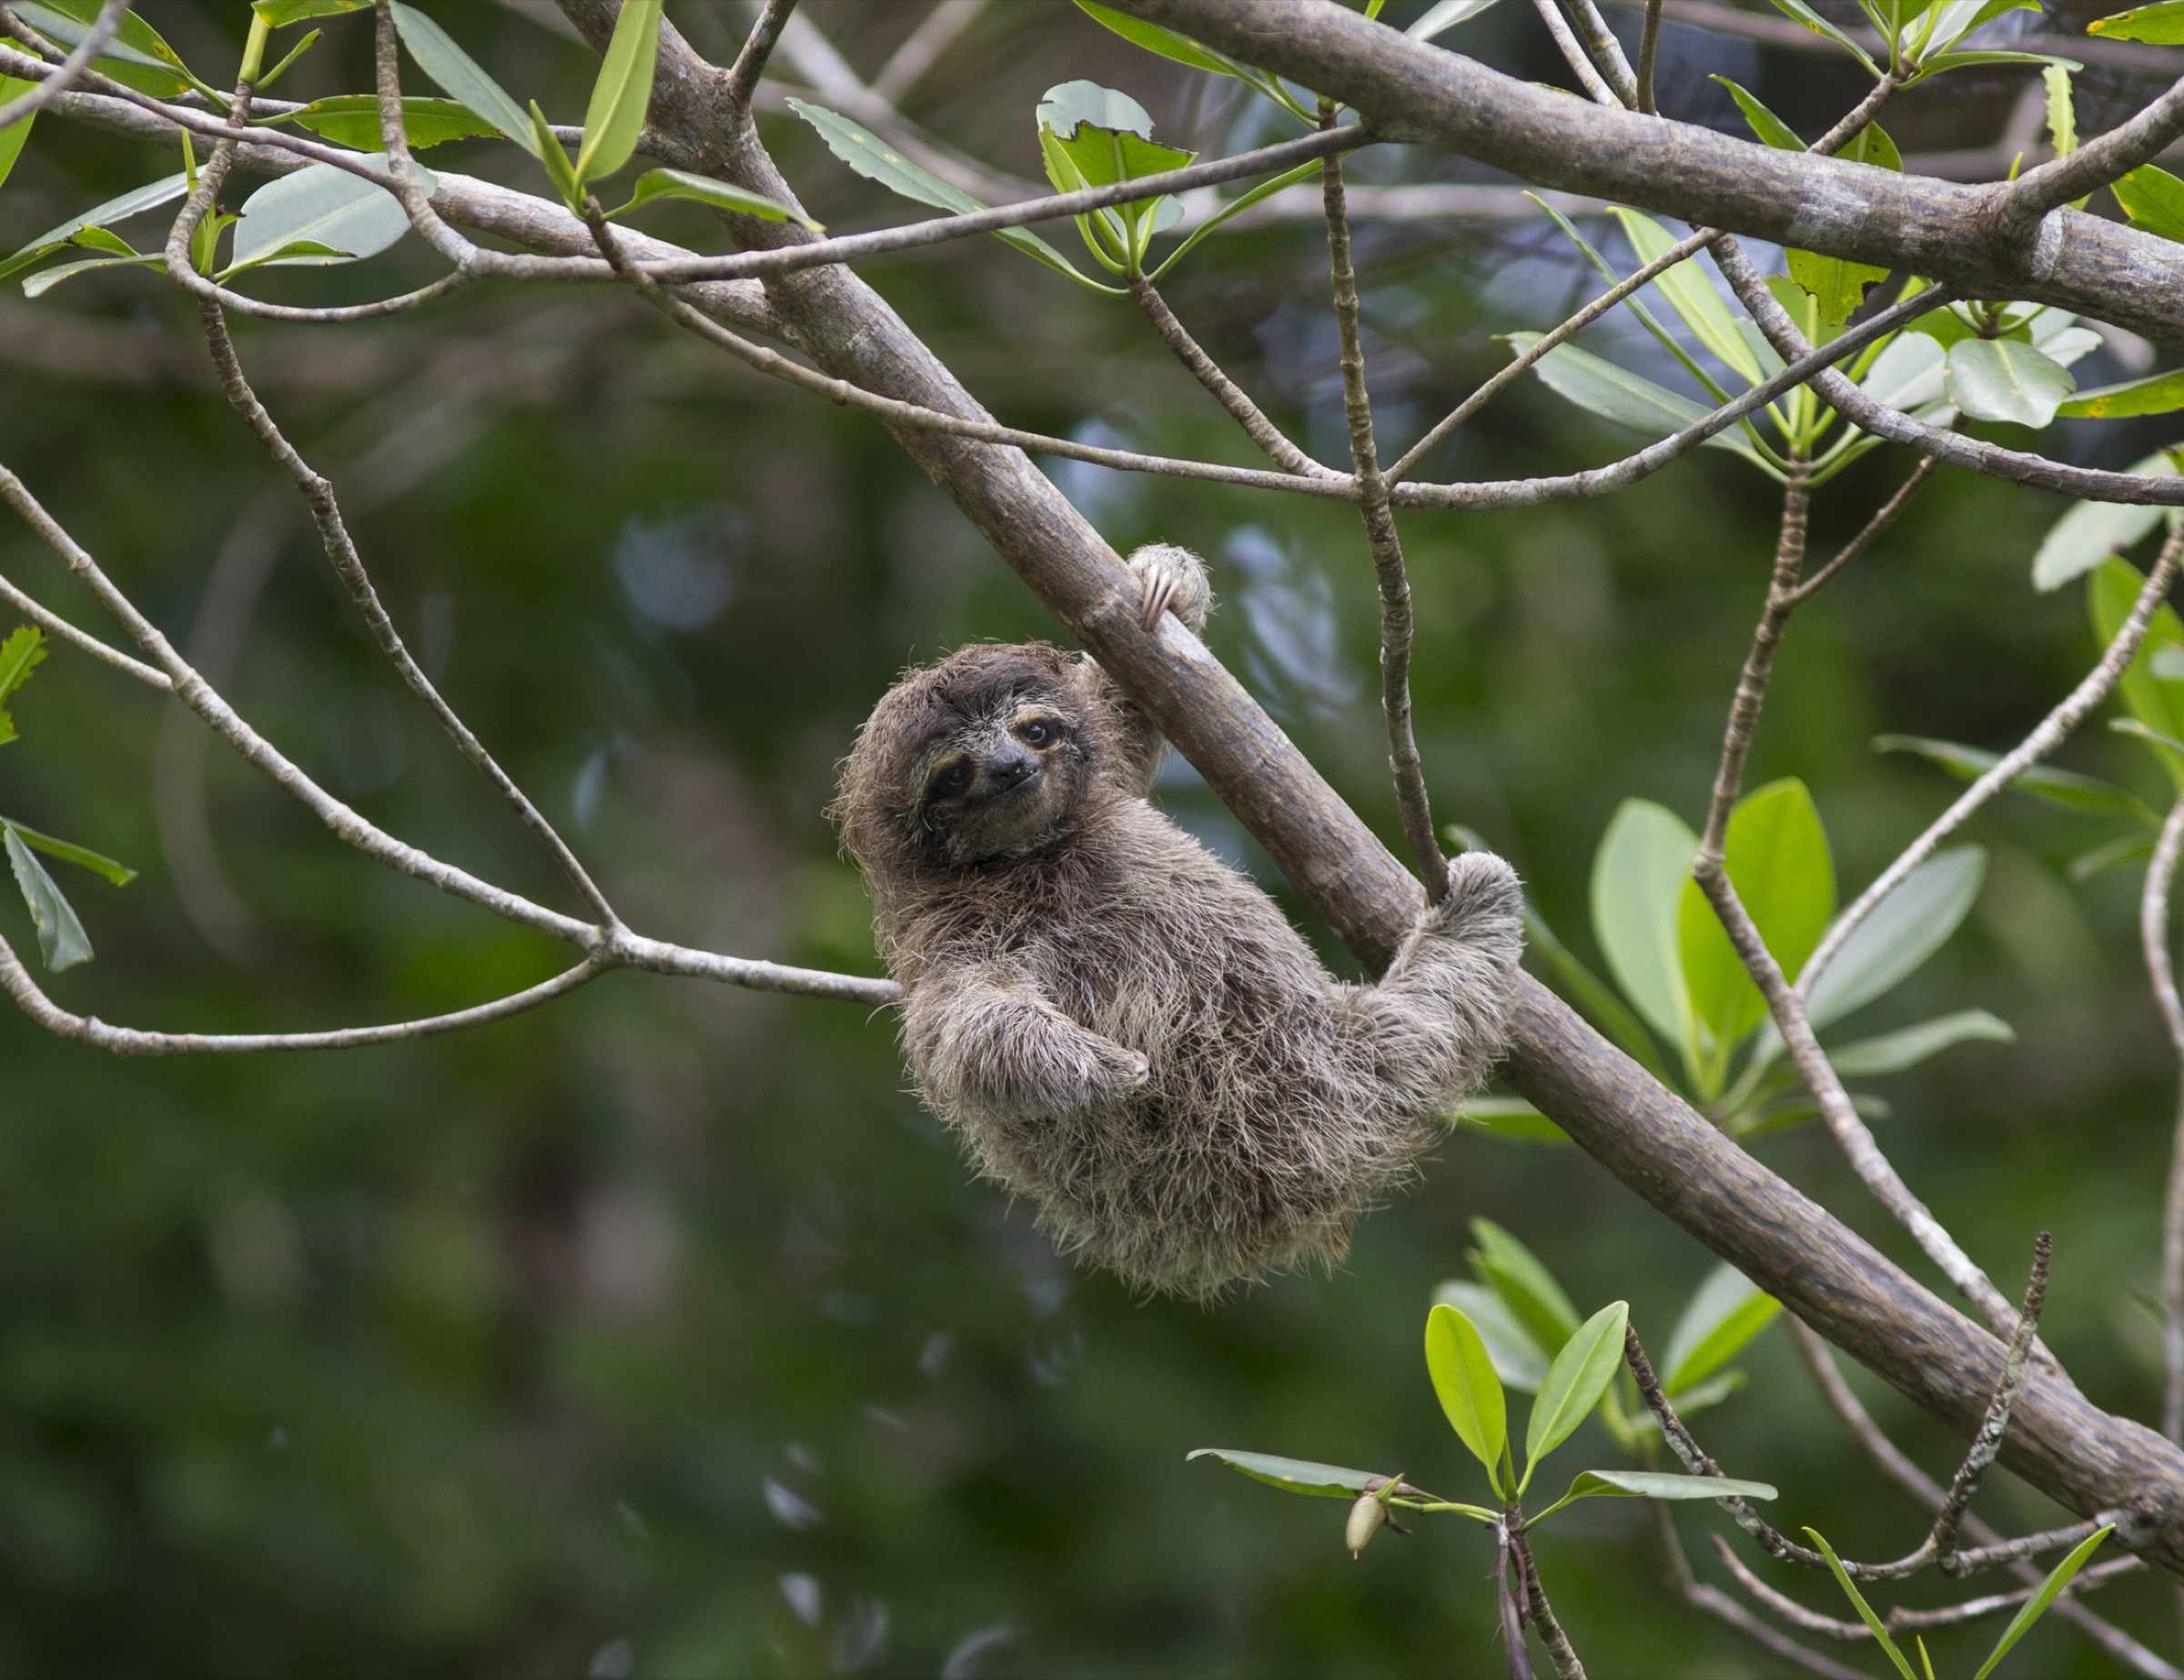 At just four months old, this pygmy sloth can already hang from a tree branch by itself.